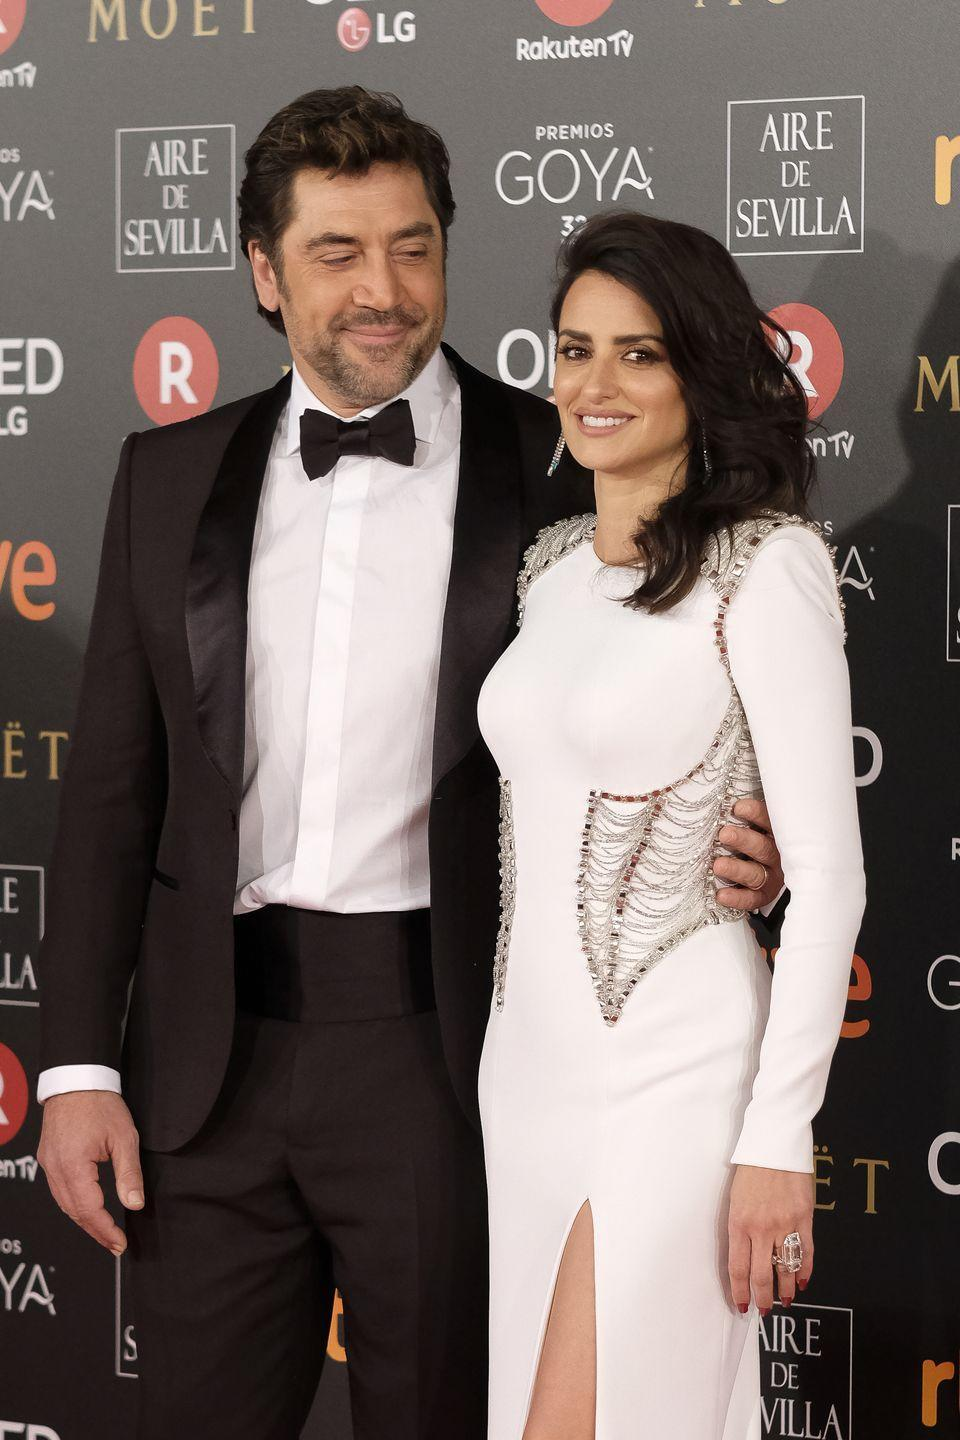 """<p>While Penelope Cruz and Javier Bardem have always been a tight-lipped couple, their <a href=""""https://www.glamour.com/story/penelope-cruz-and-javier-barde"""" rel=""""nofollow noopener"""" target=""""_blank"""" data-ylk=""""slk:simple elopement"""" class=""""link rapid-noclick-resp"""">simple elopement</a> takes the cake for secret Hollywood weddings. In 2010, in front of only their family, the couple made it official at their friend's home in the Bahamas.</p>"""